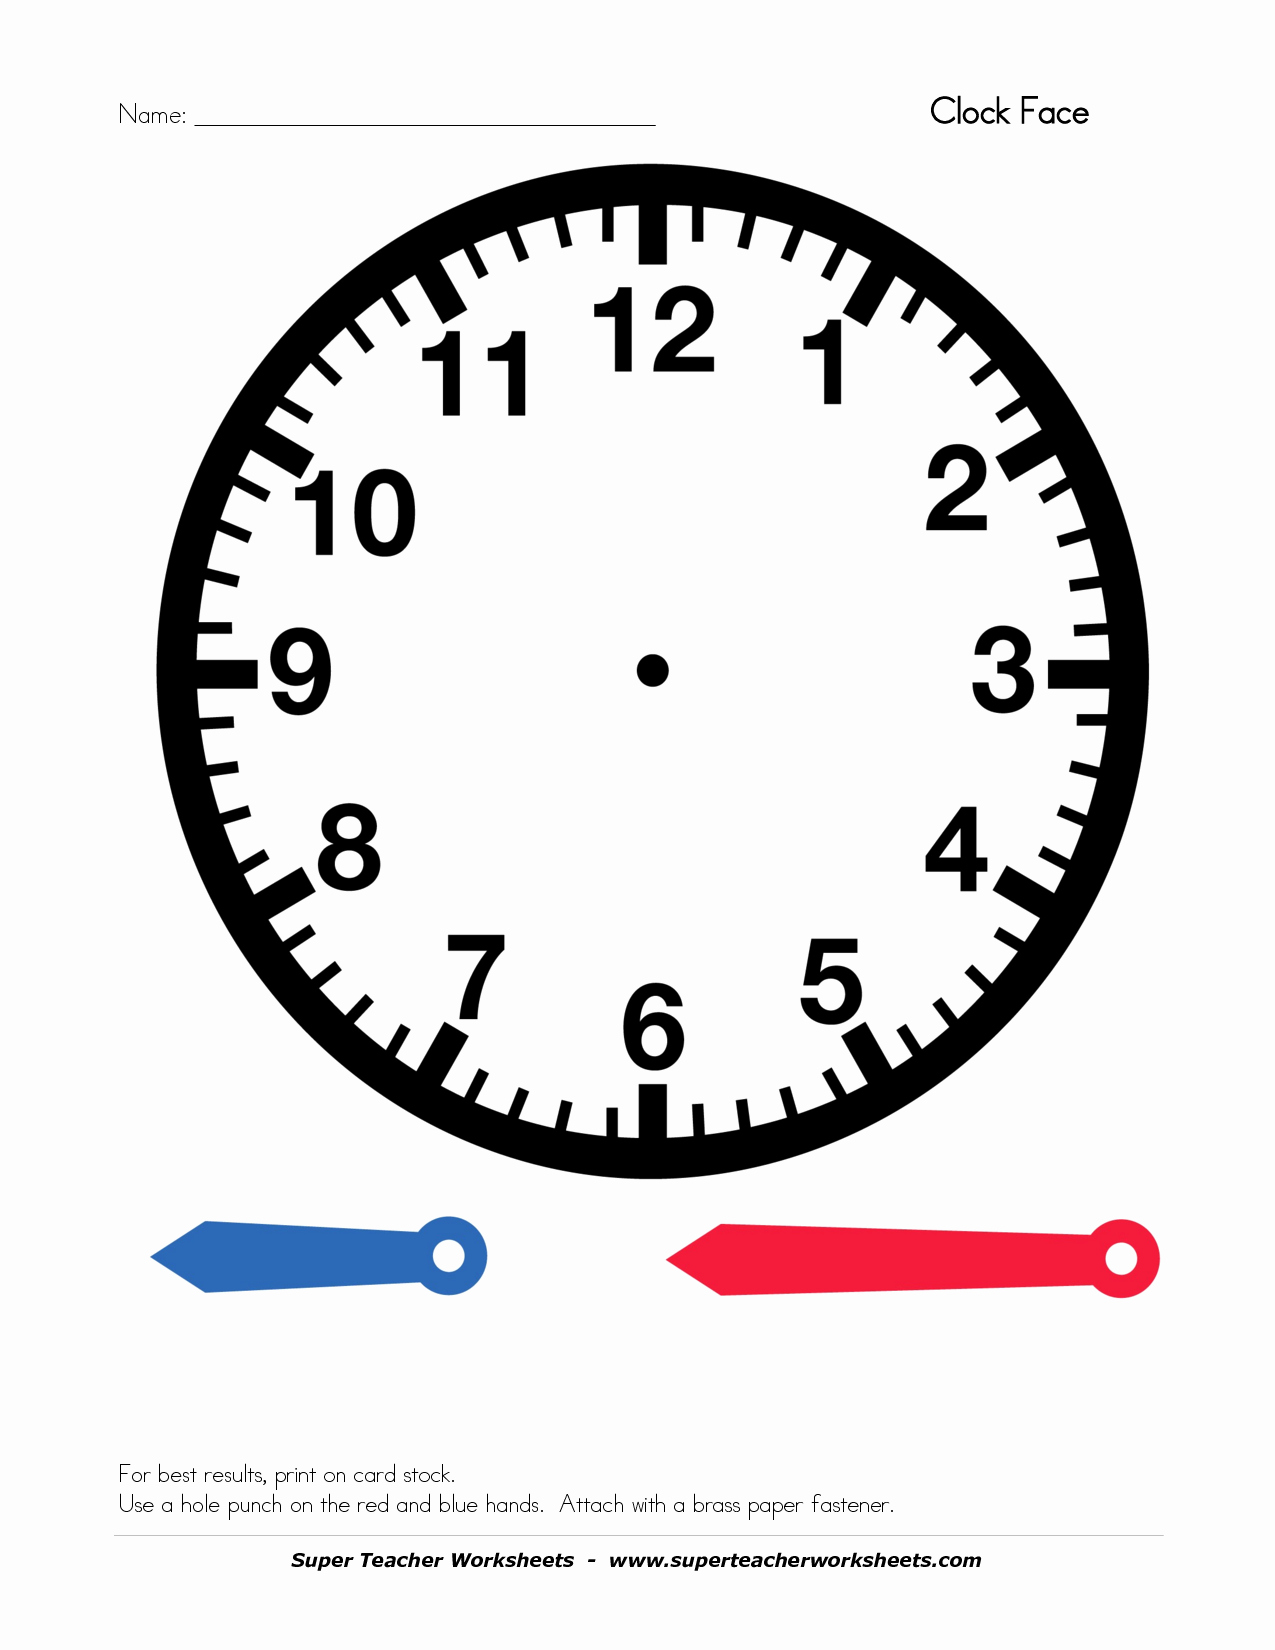 Clock In Clock Out Template New Best S Of Clock Face Template with Hands Blank